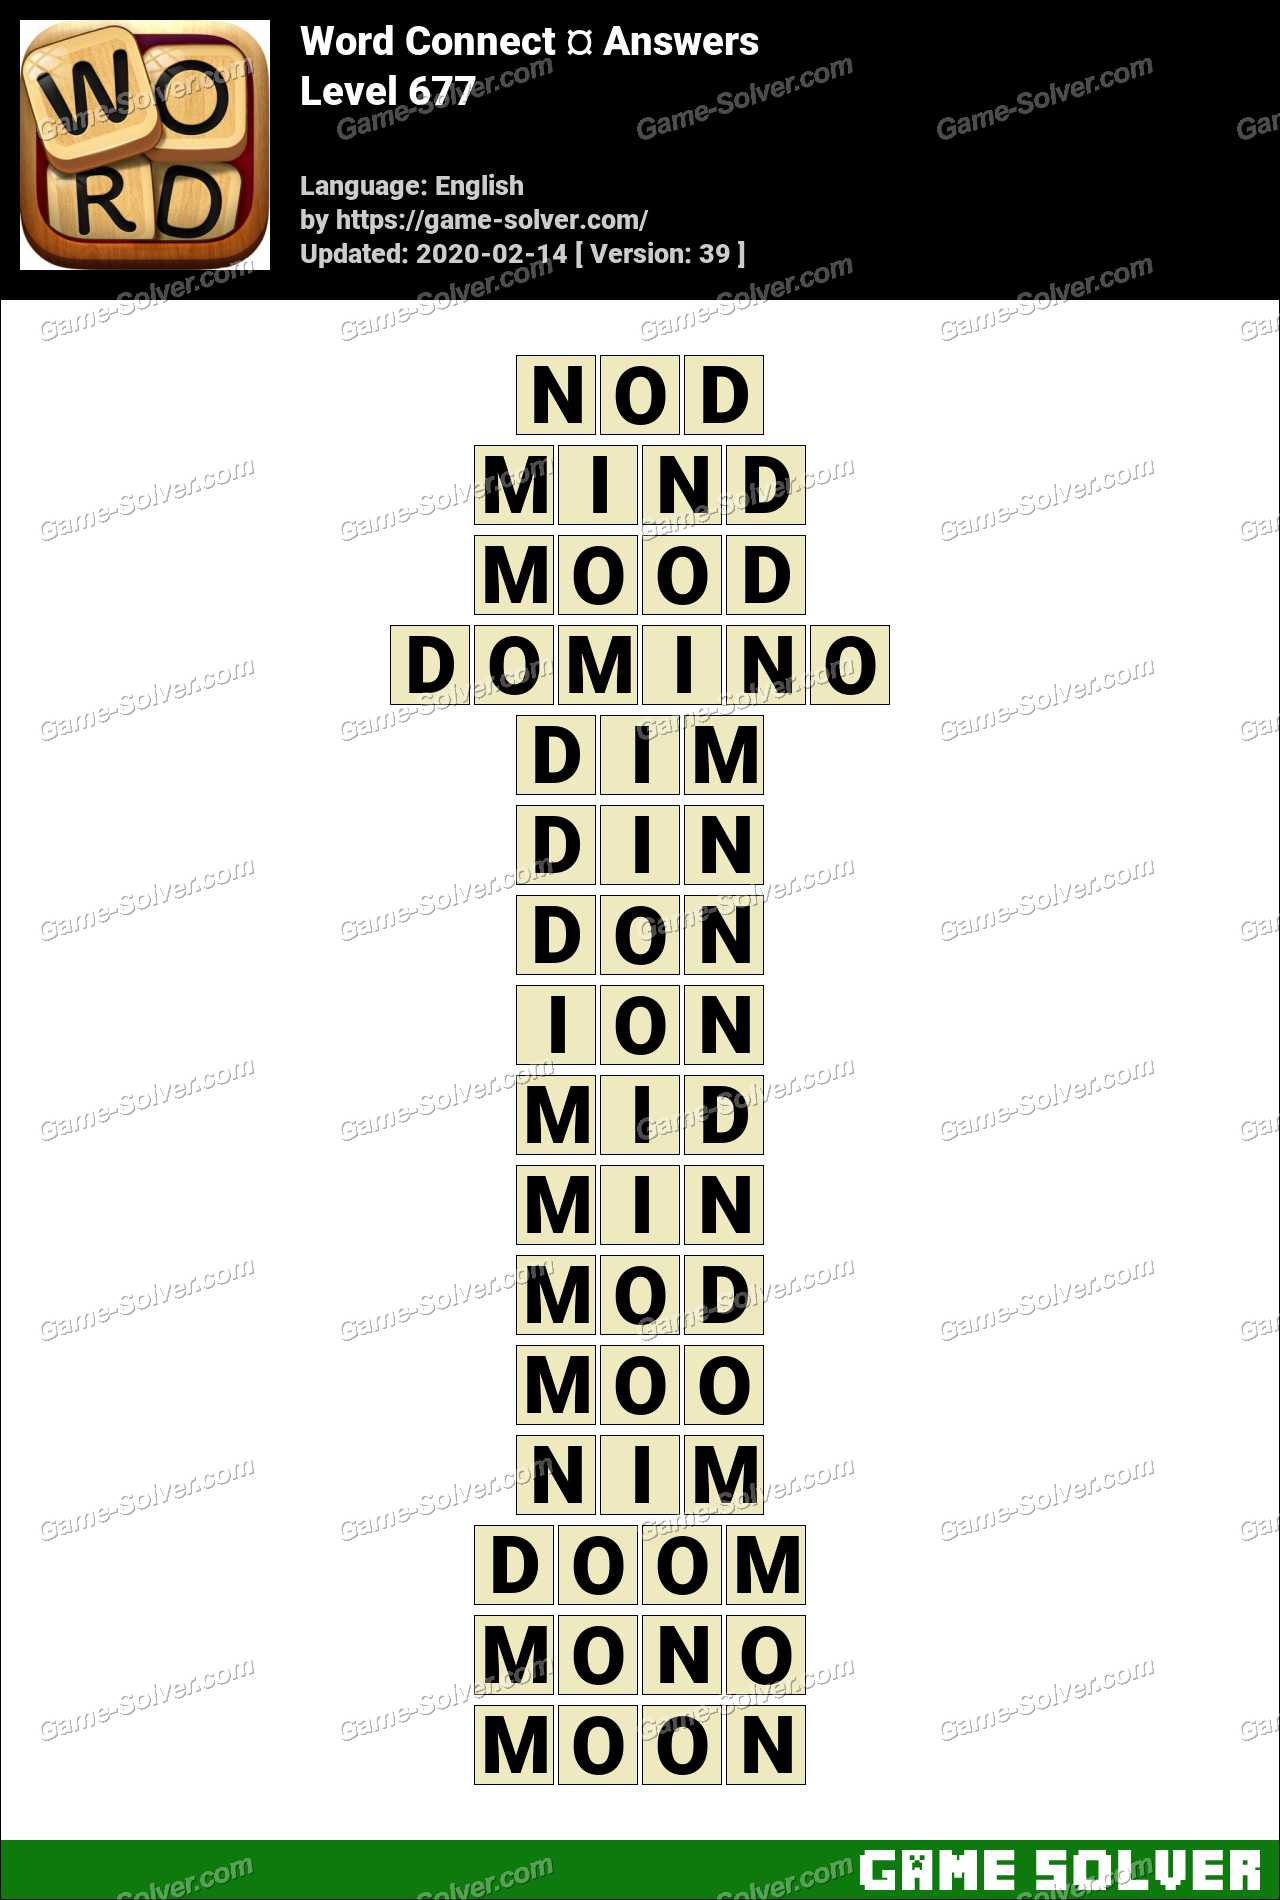 Word Connect Level 677 Answers